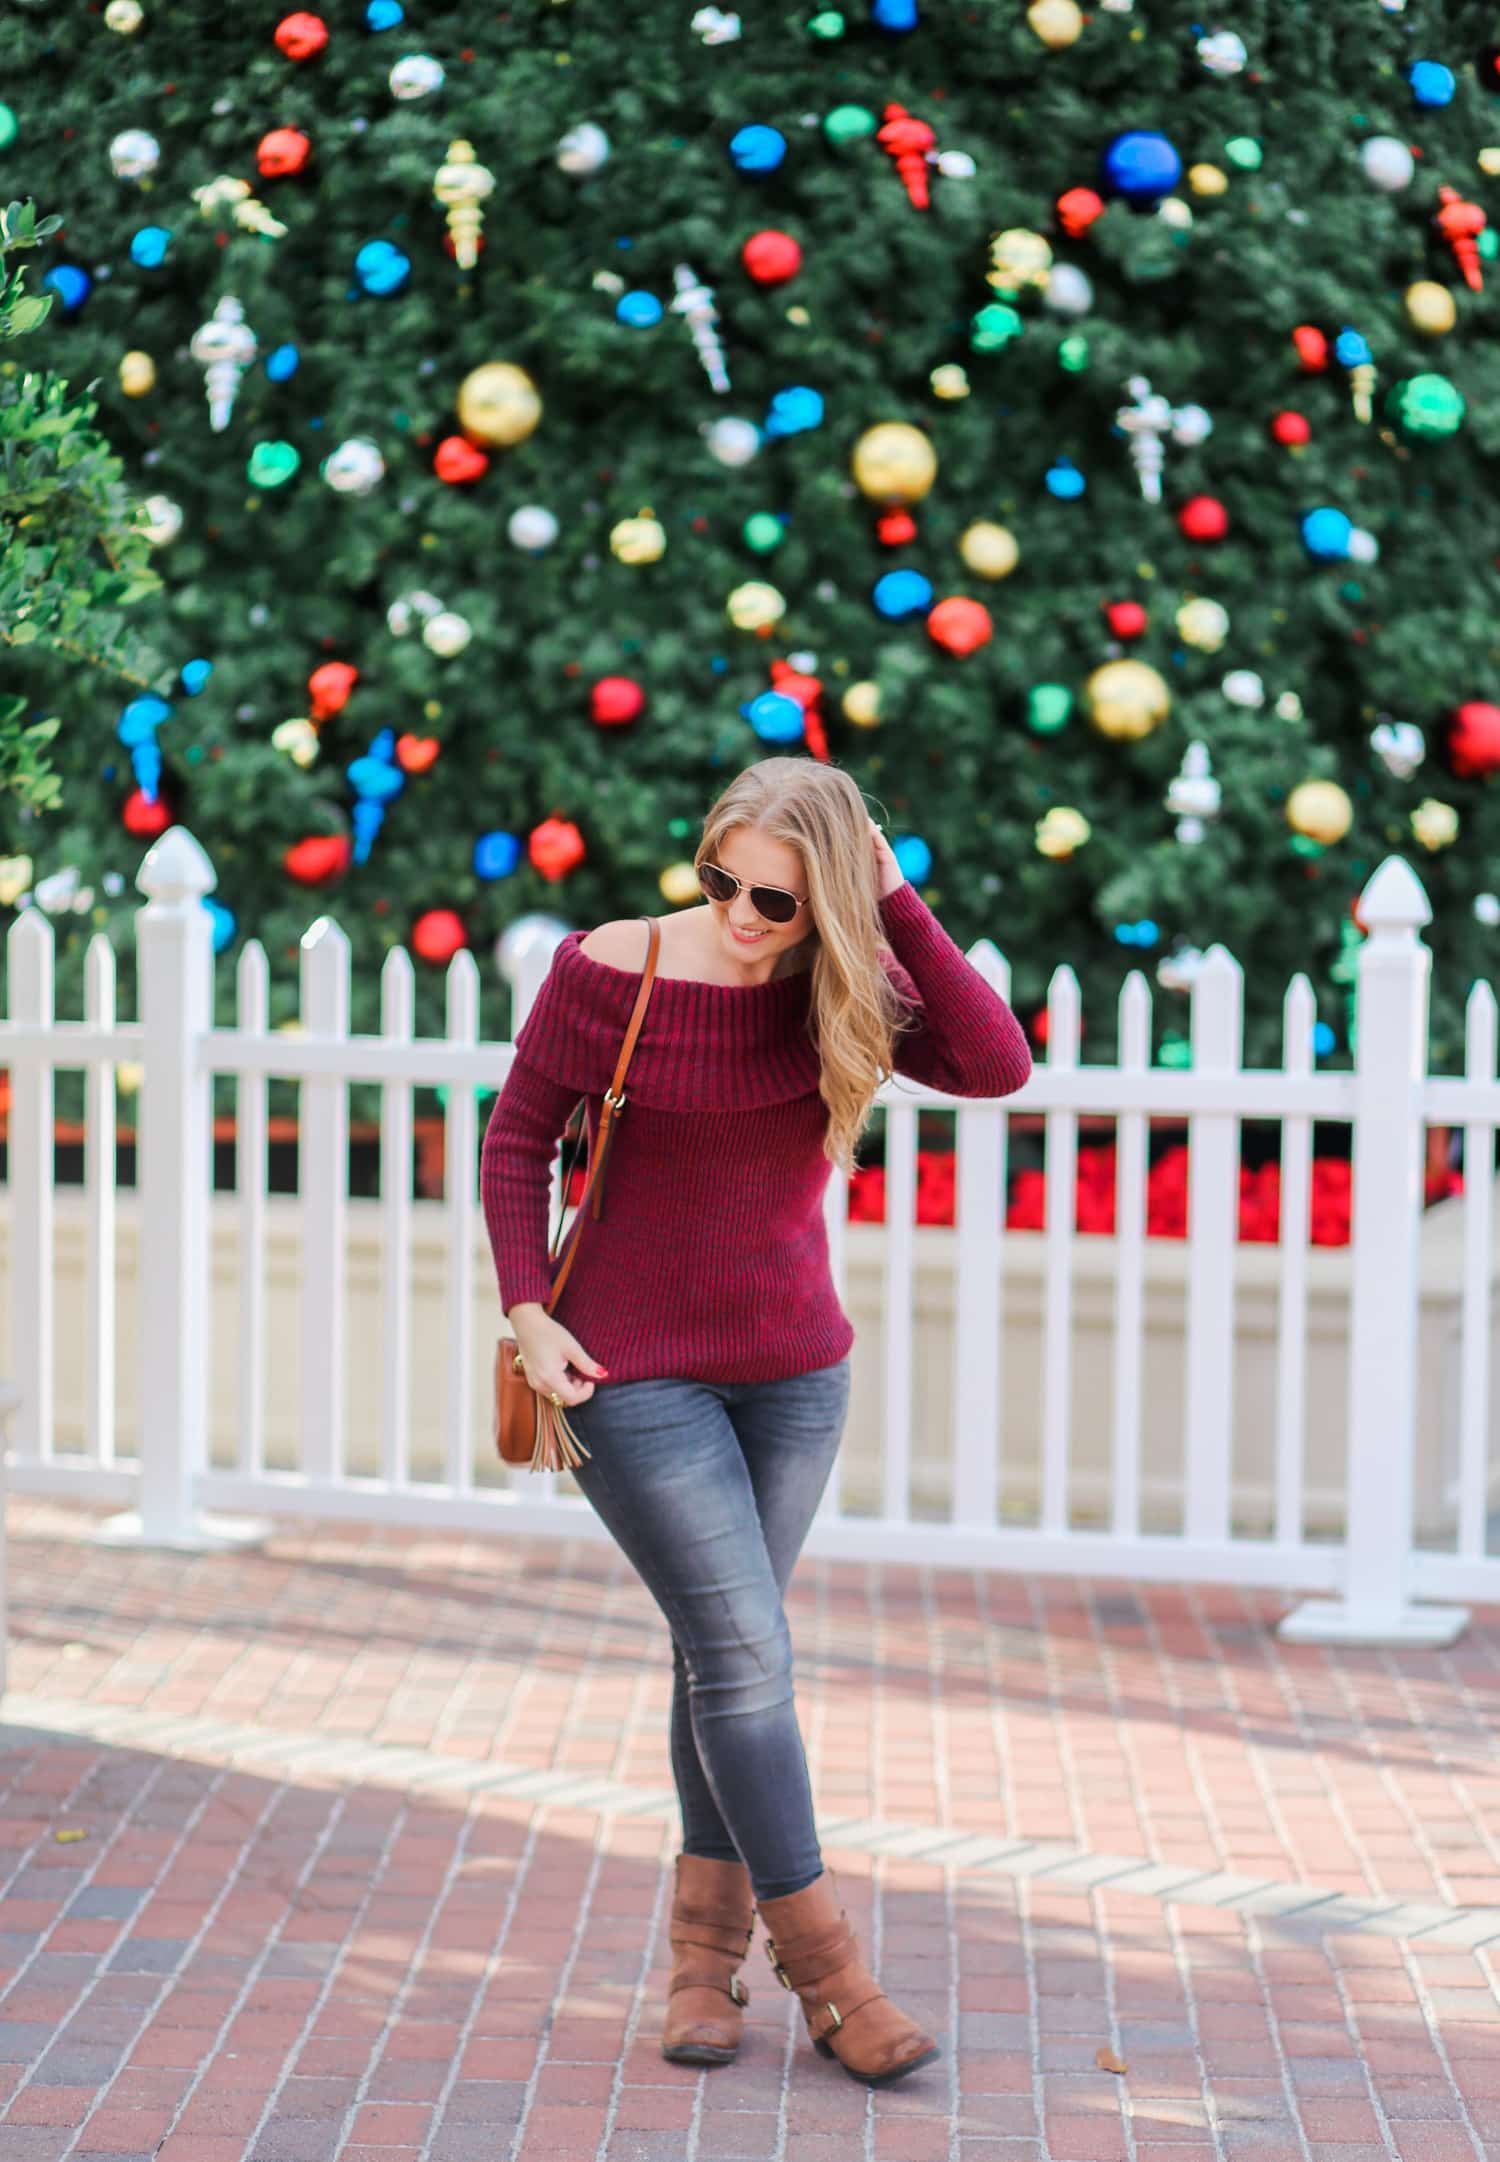 casual-winter-outfit-off-the-shoulder-sweater-gray-jeggins-moto-boots-foster-grant-rose-gold-aviator-sunglasses-7651-2